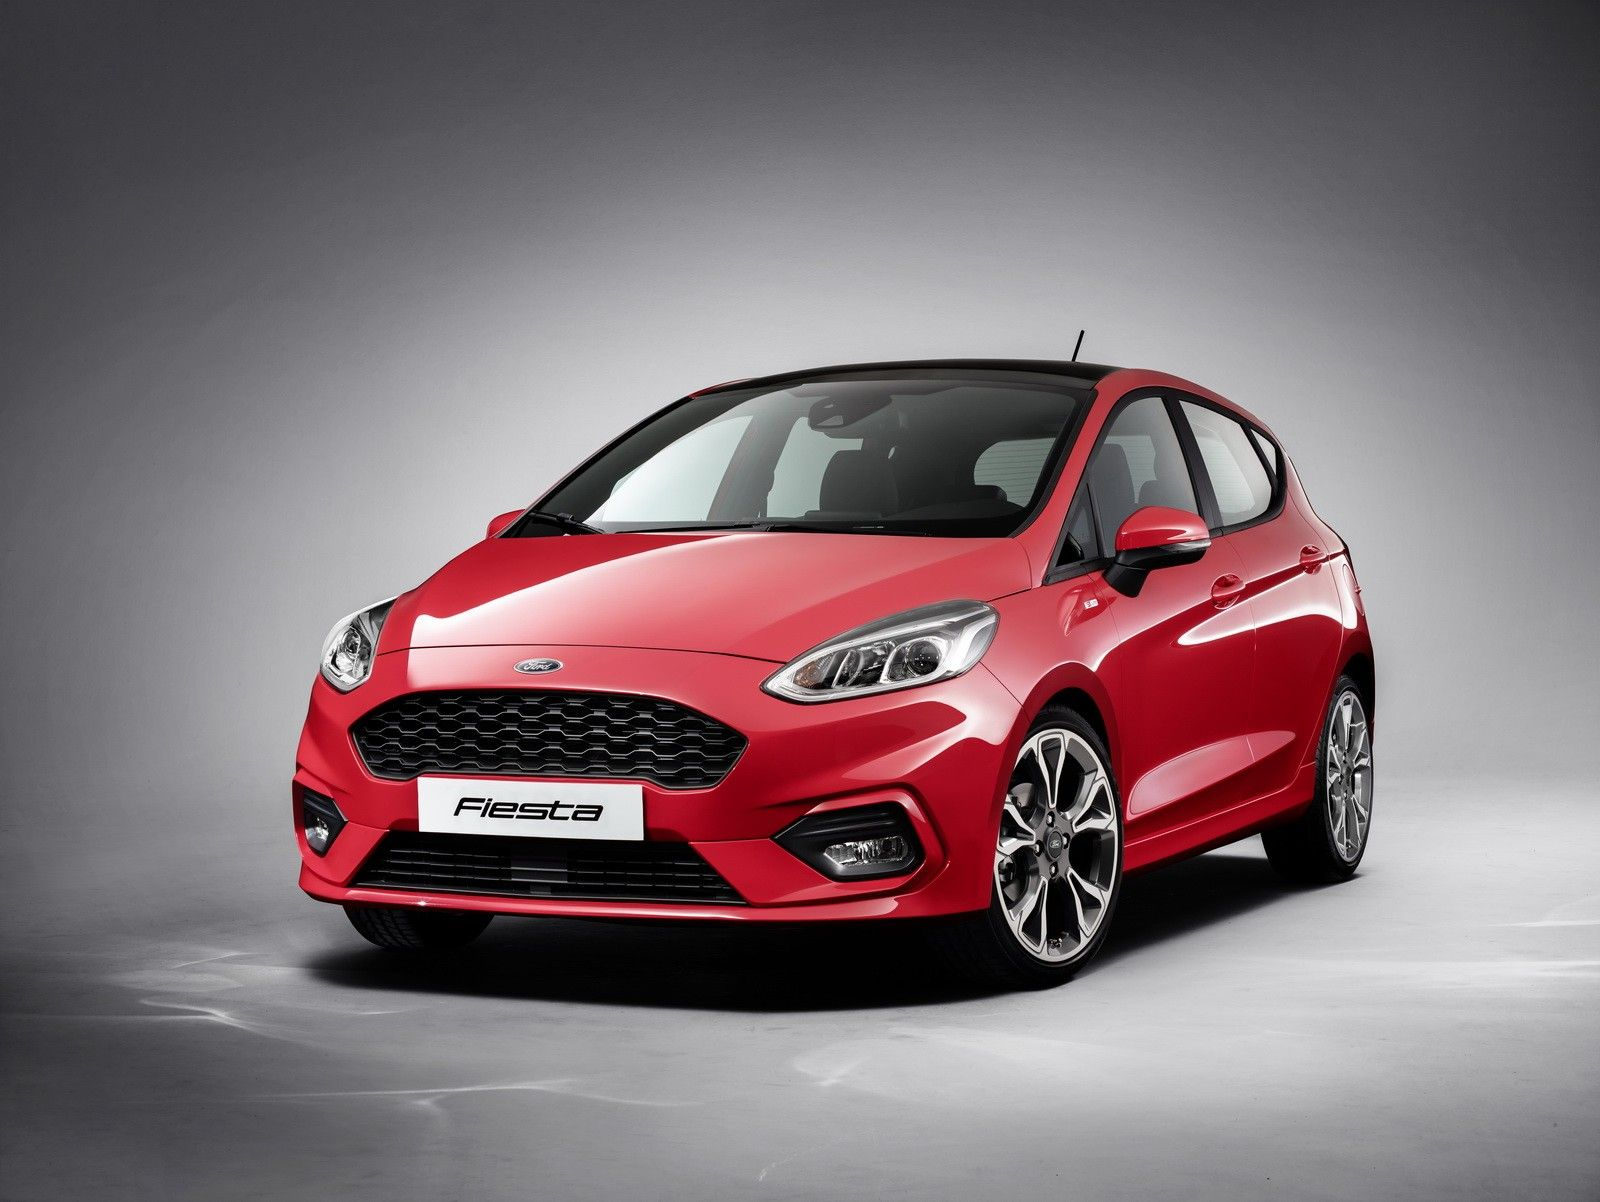 Pin By Future Concept Car On Ford Fiesta ST New Features And - 2018 ford focus st invoice price